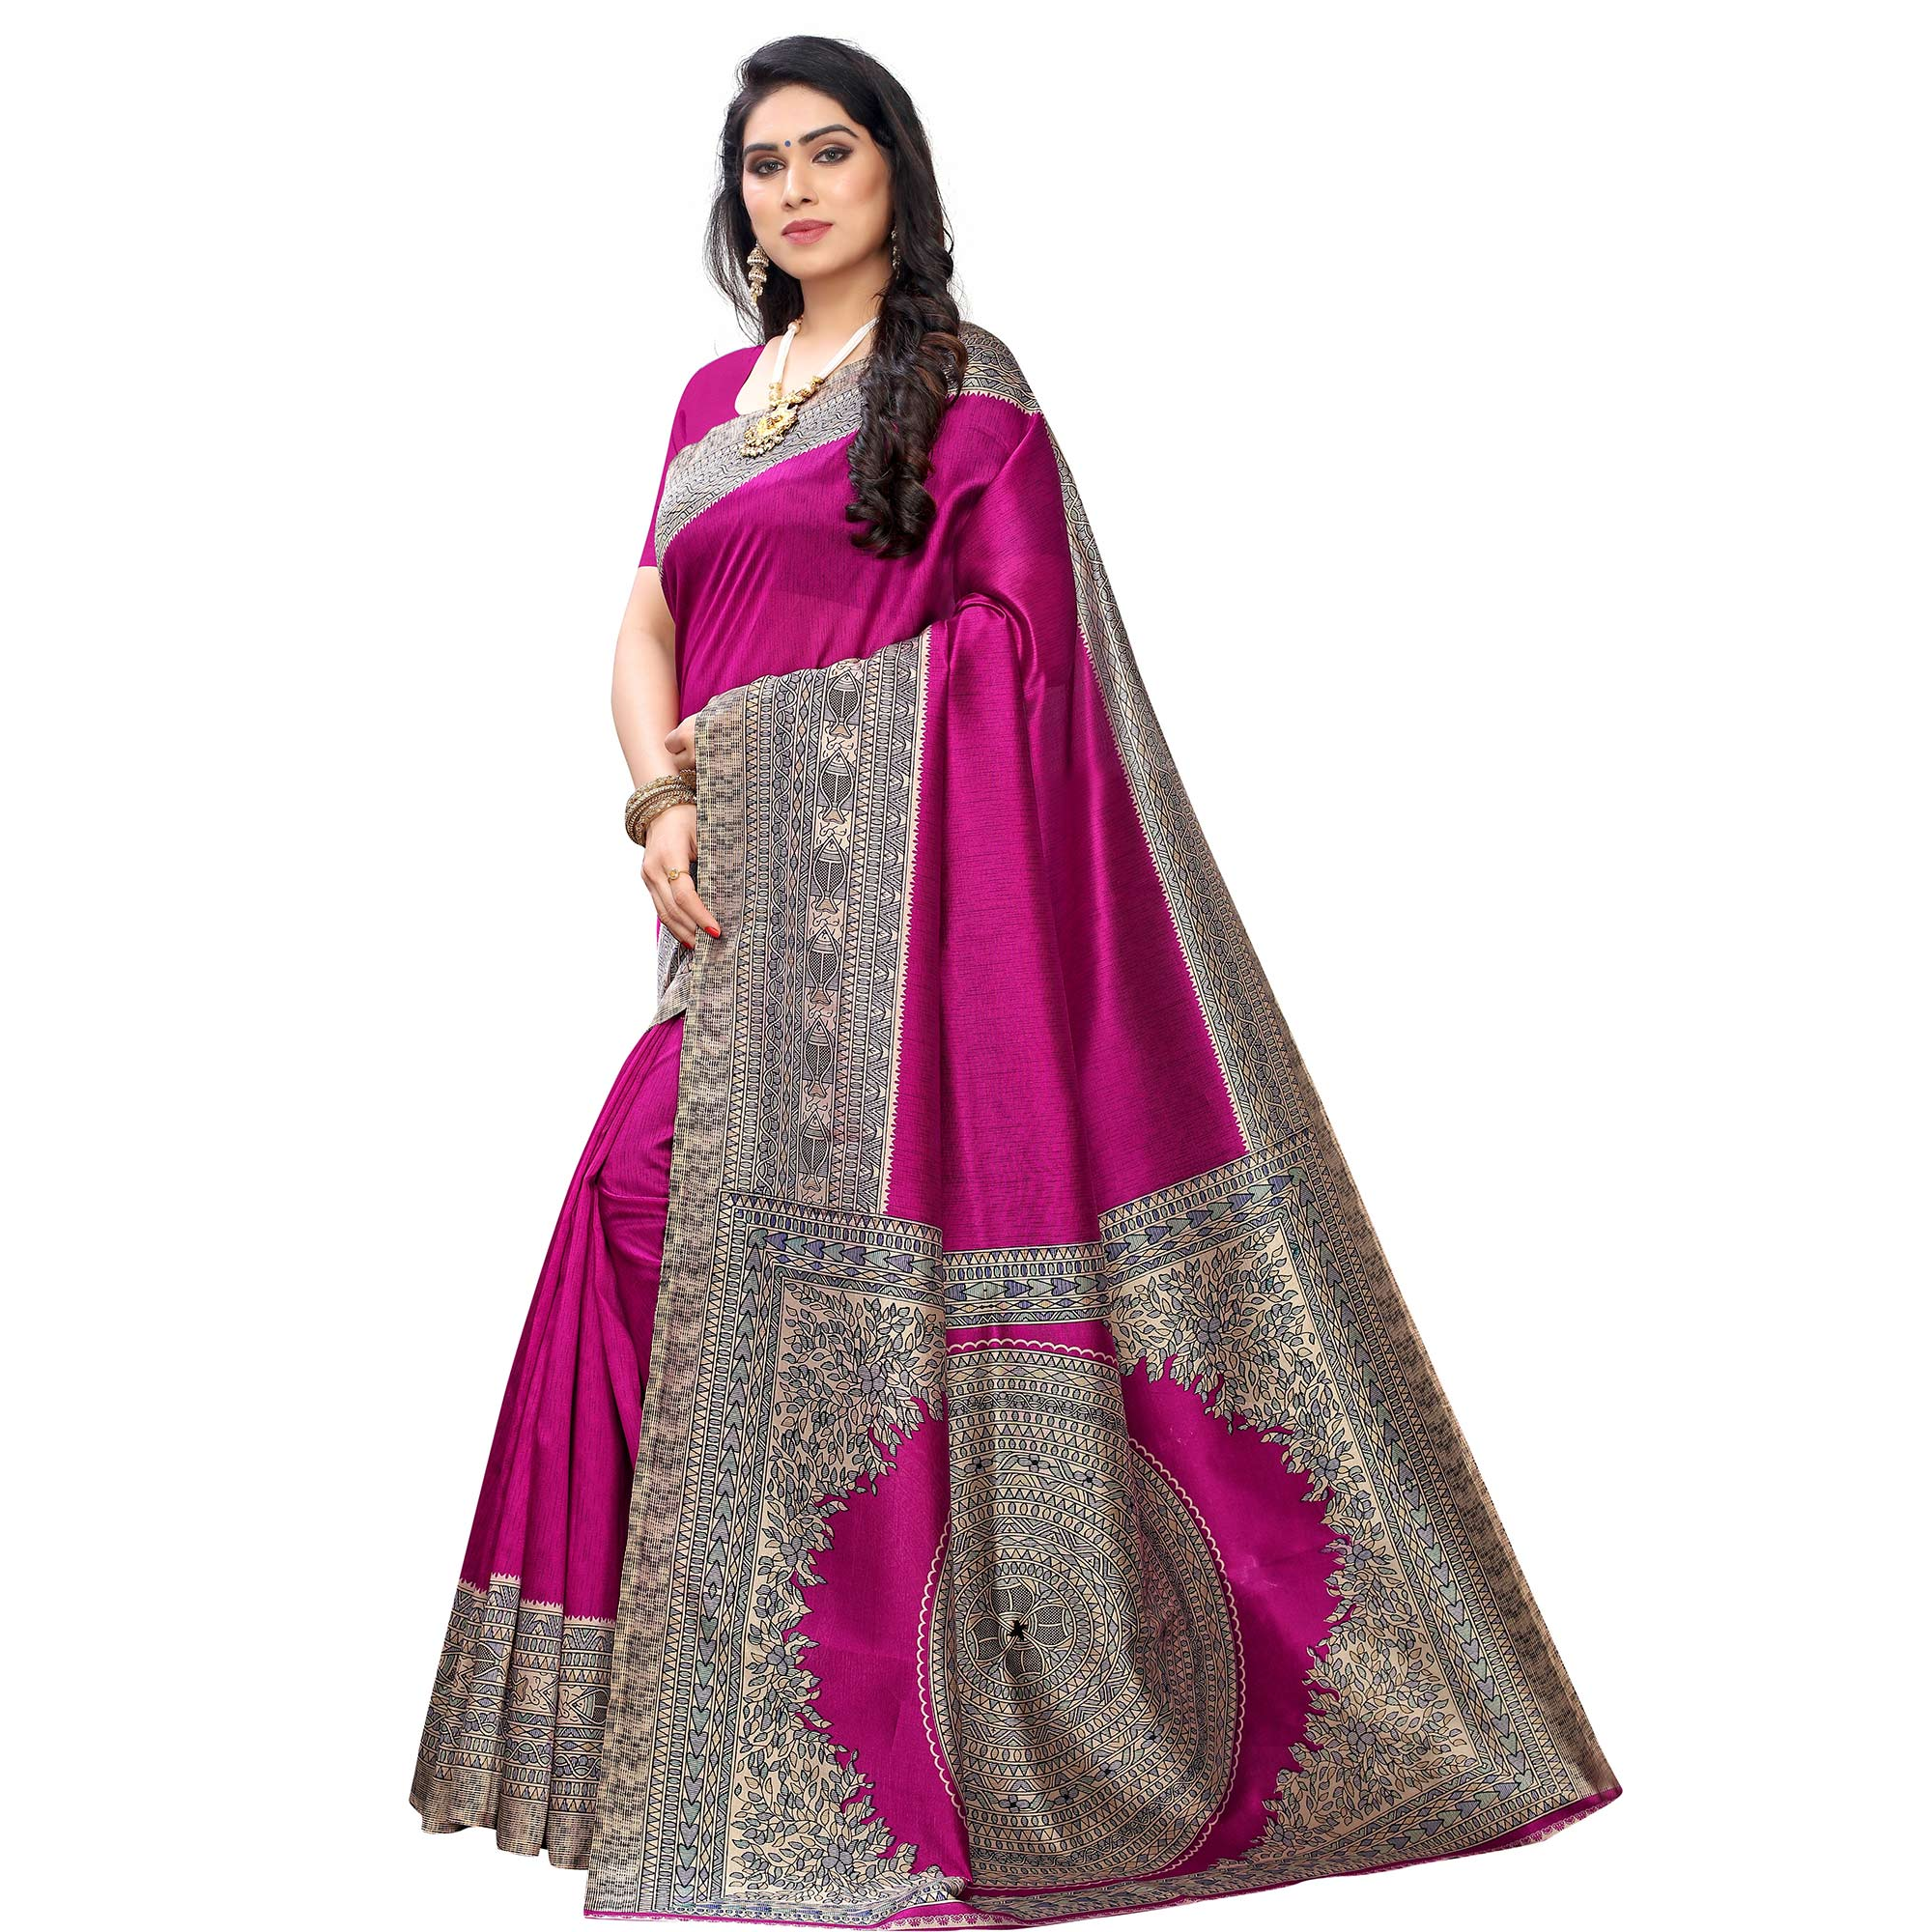 Opulent Pink Colored Festive Wear Printed Art Silk Saree